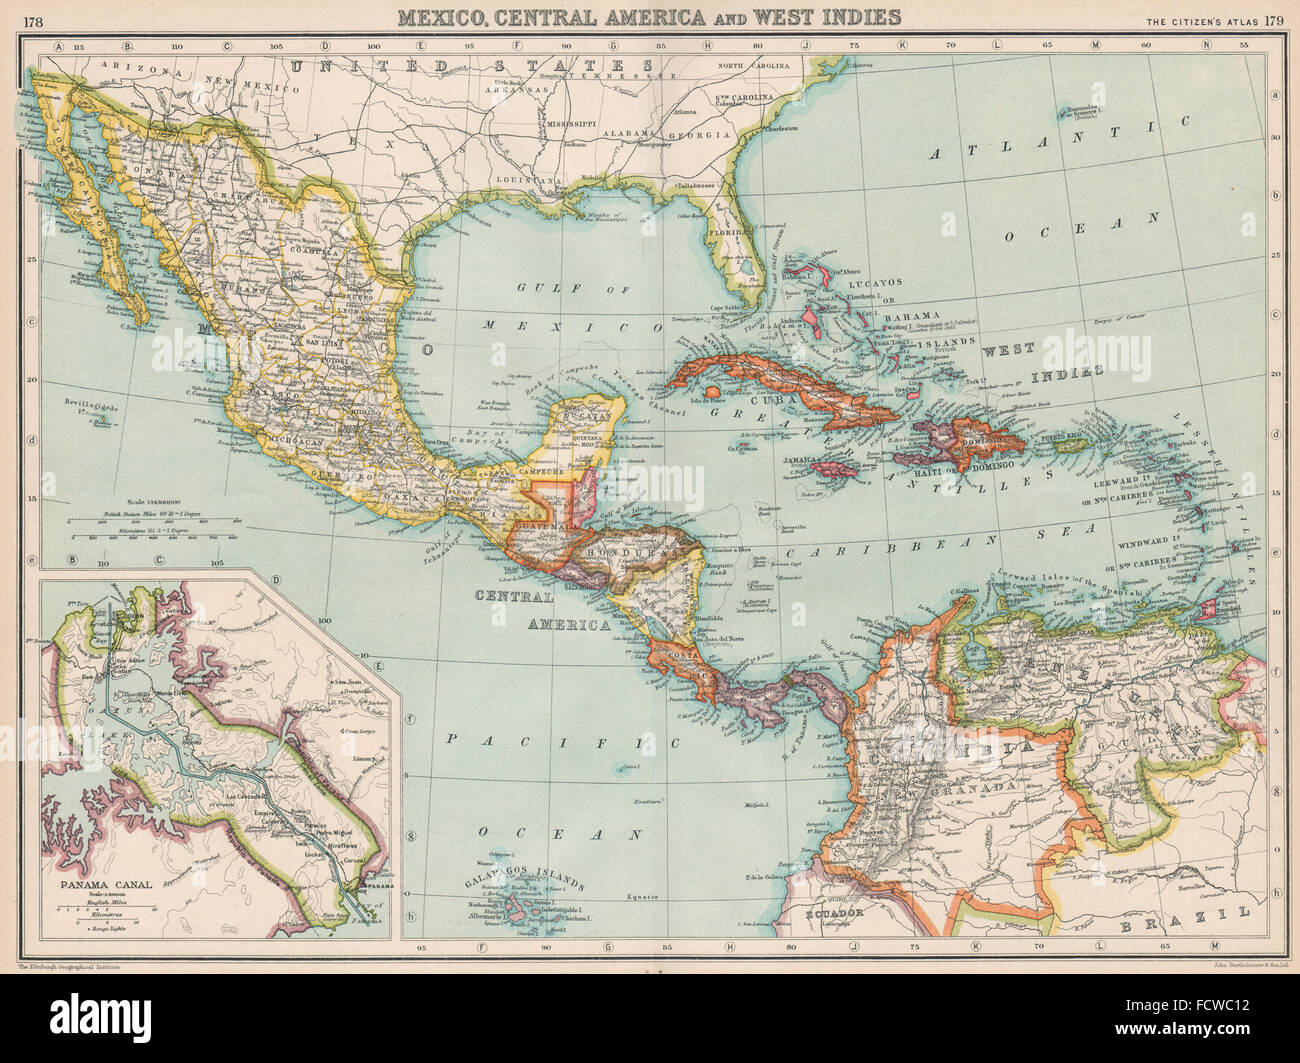 CENTRAL AMERICA Gulf Of Mexico Caribbean Panama Canal - Panama central america map